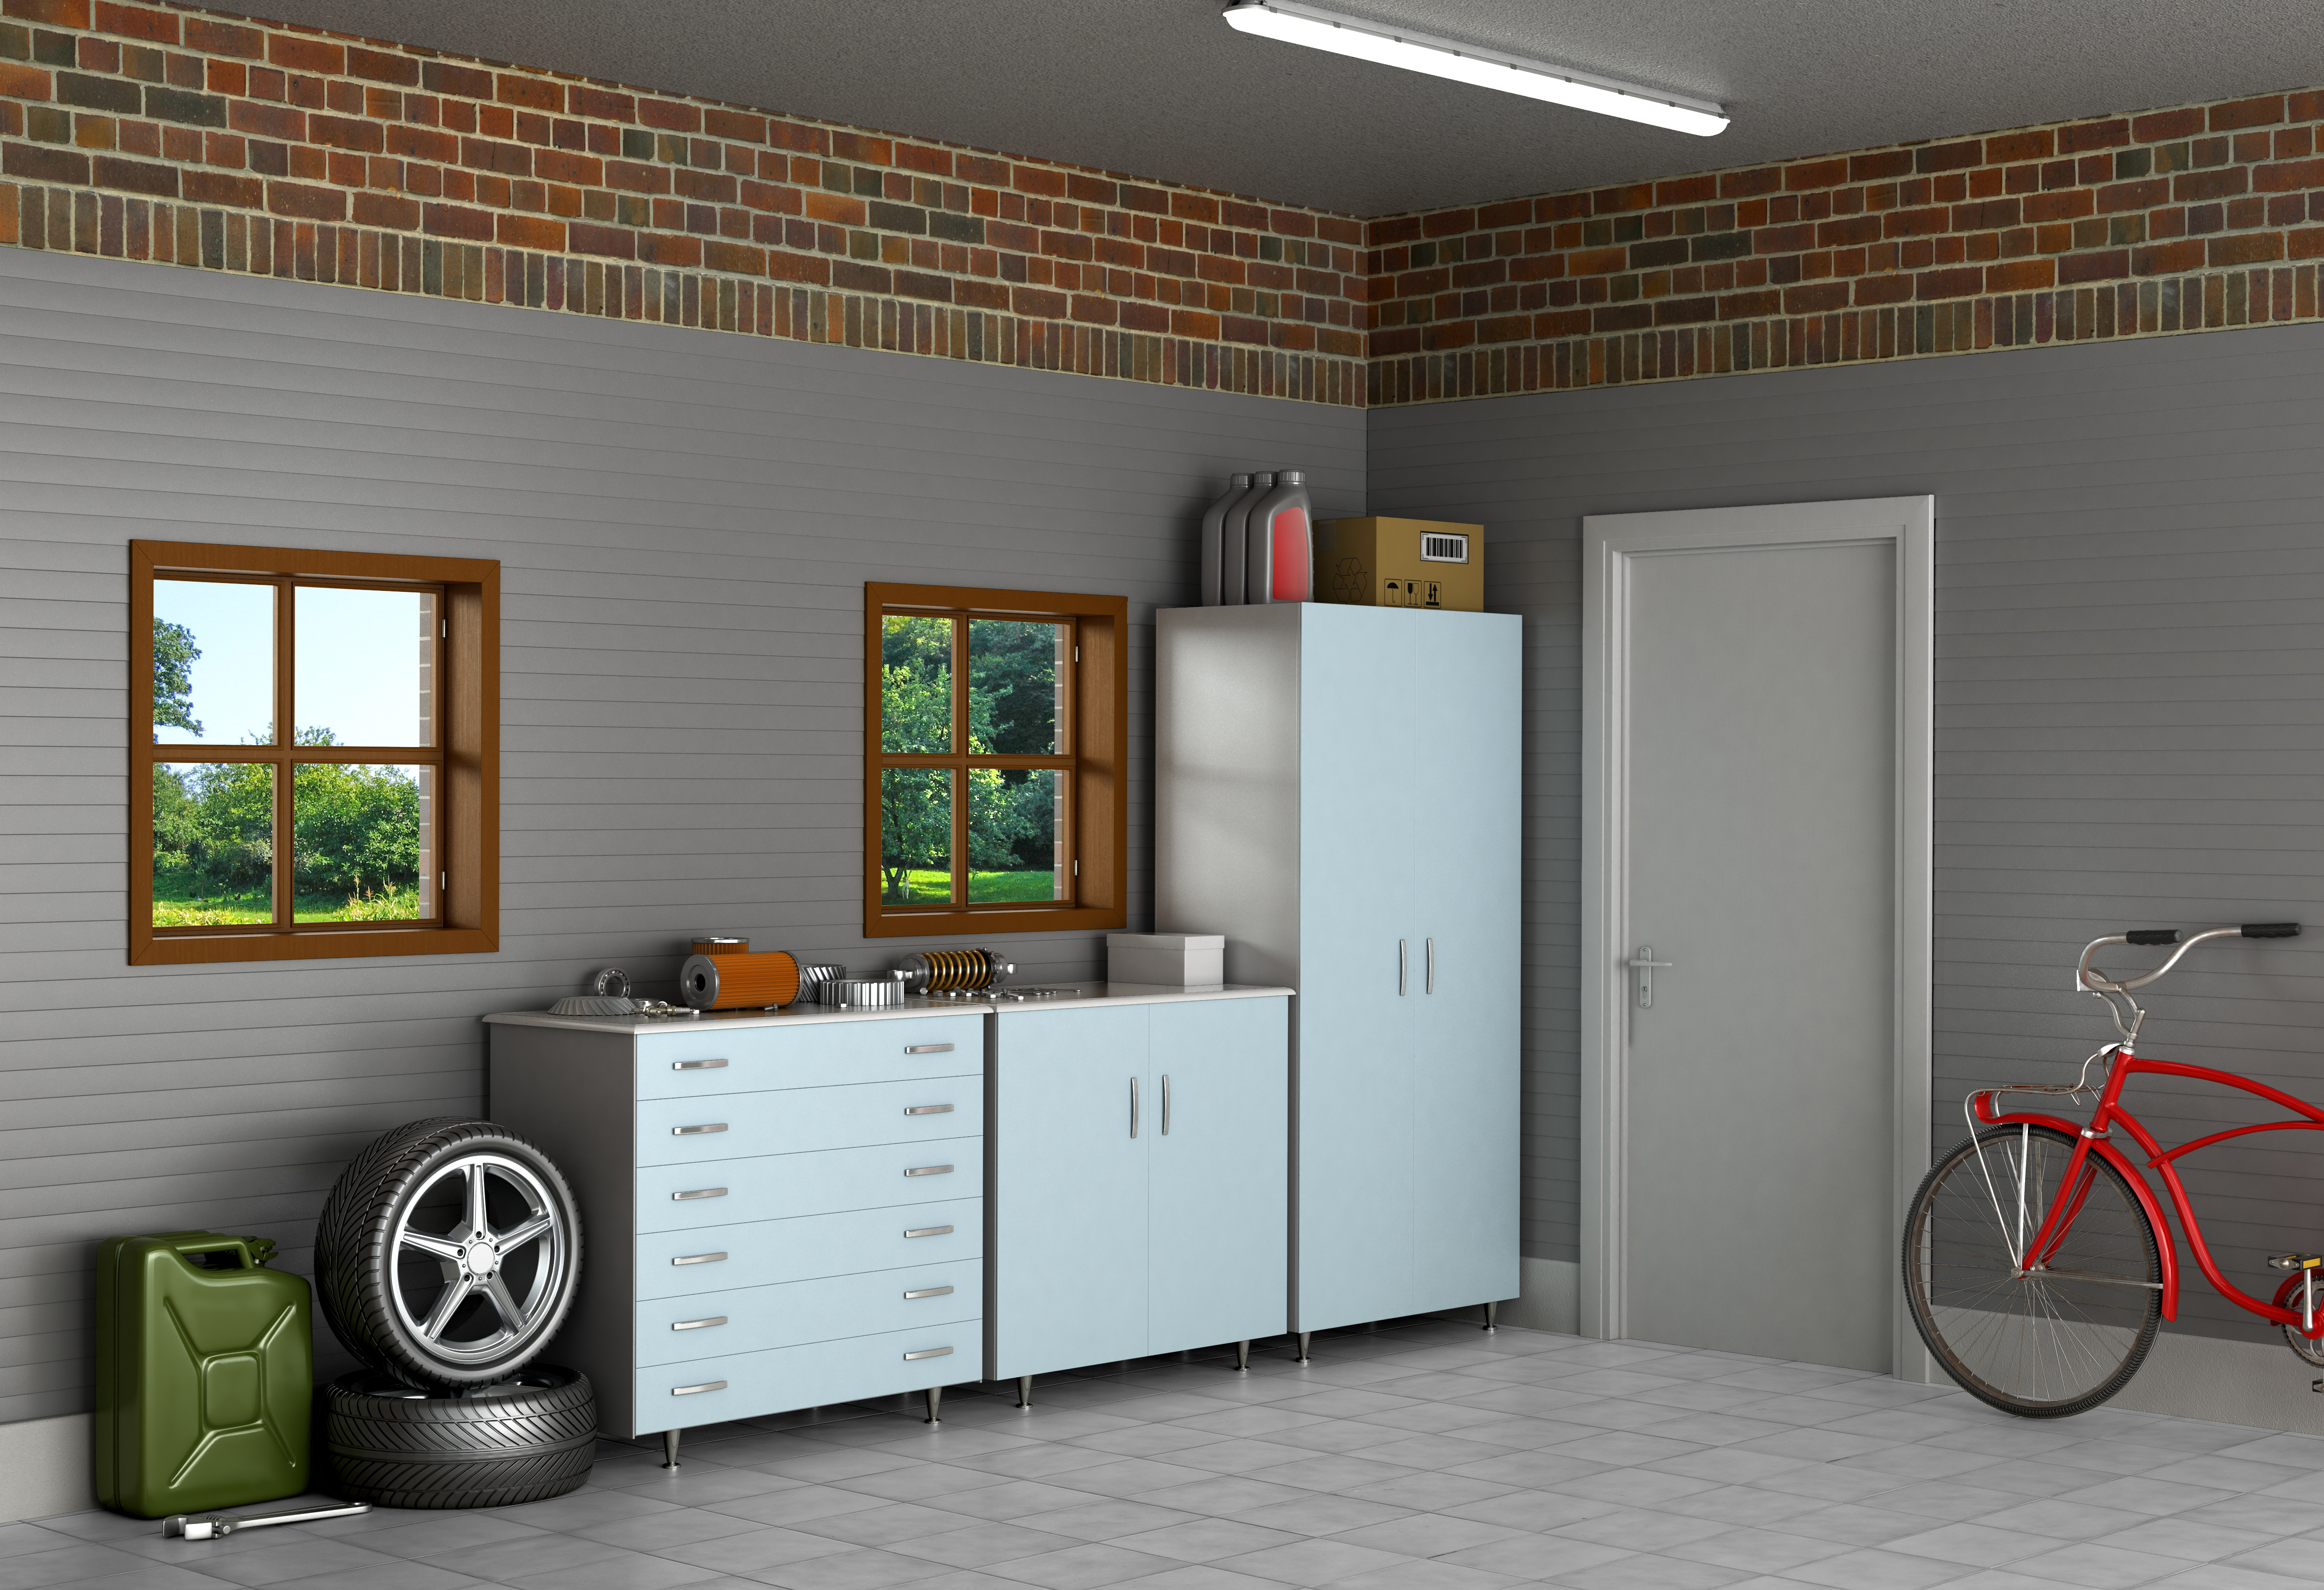 How to get the most out of your garage homesales